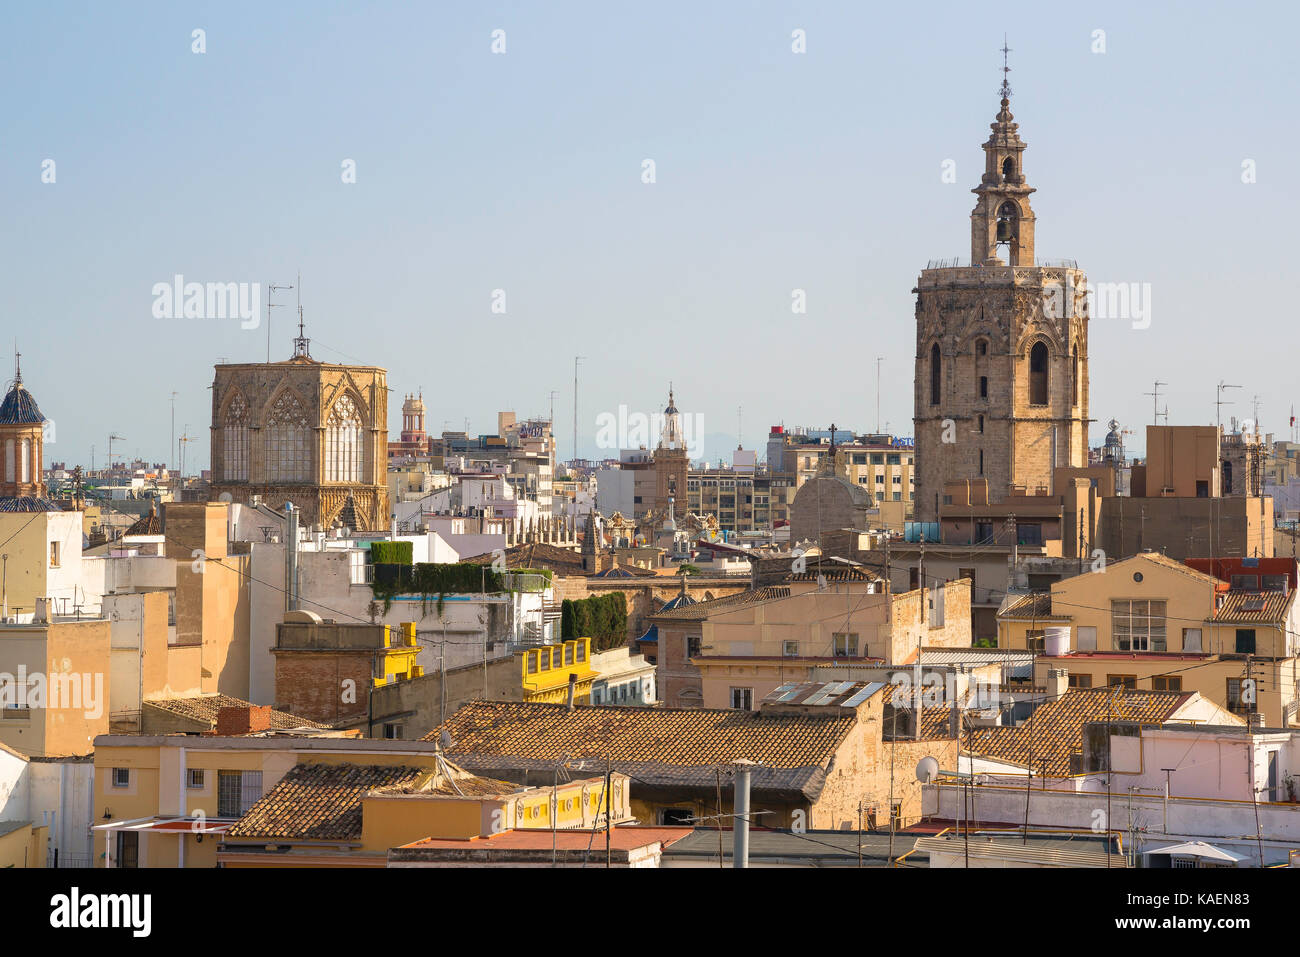 Valencia Spain city, view across the rooftops of the old town Barrio del Carmen area of Valencia with the cathedral towers visible on the skyline. Stock Photo